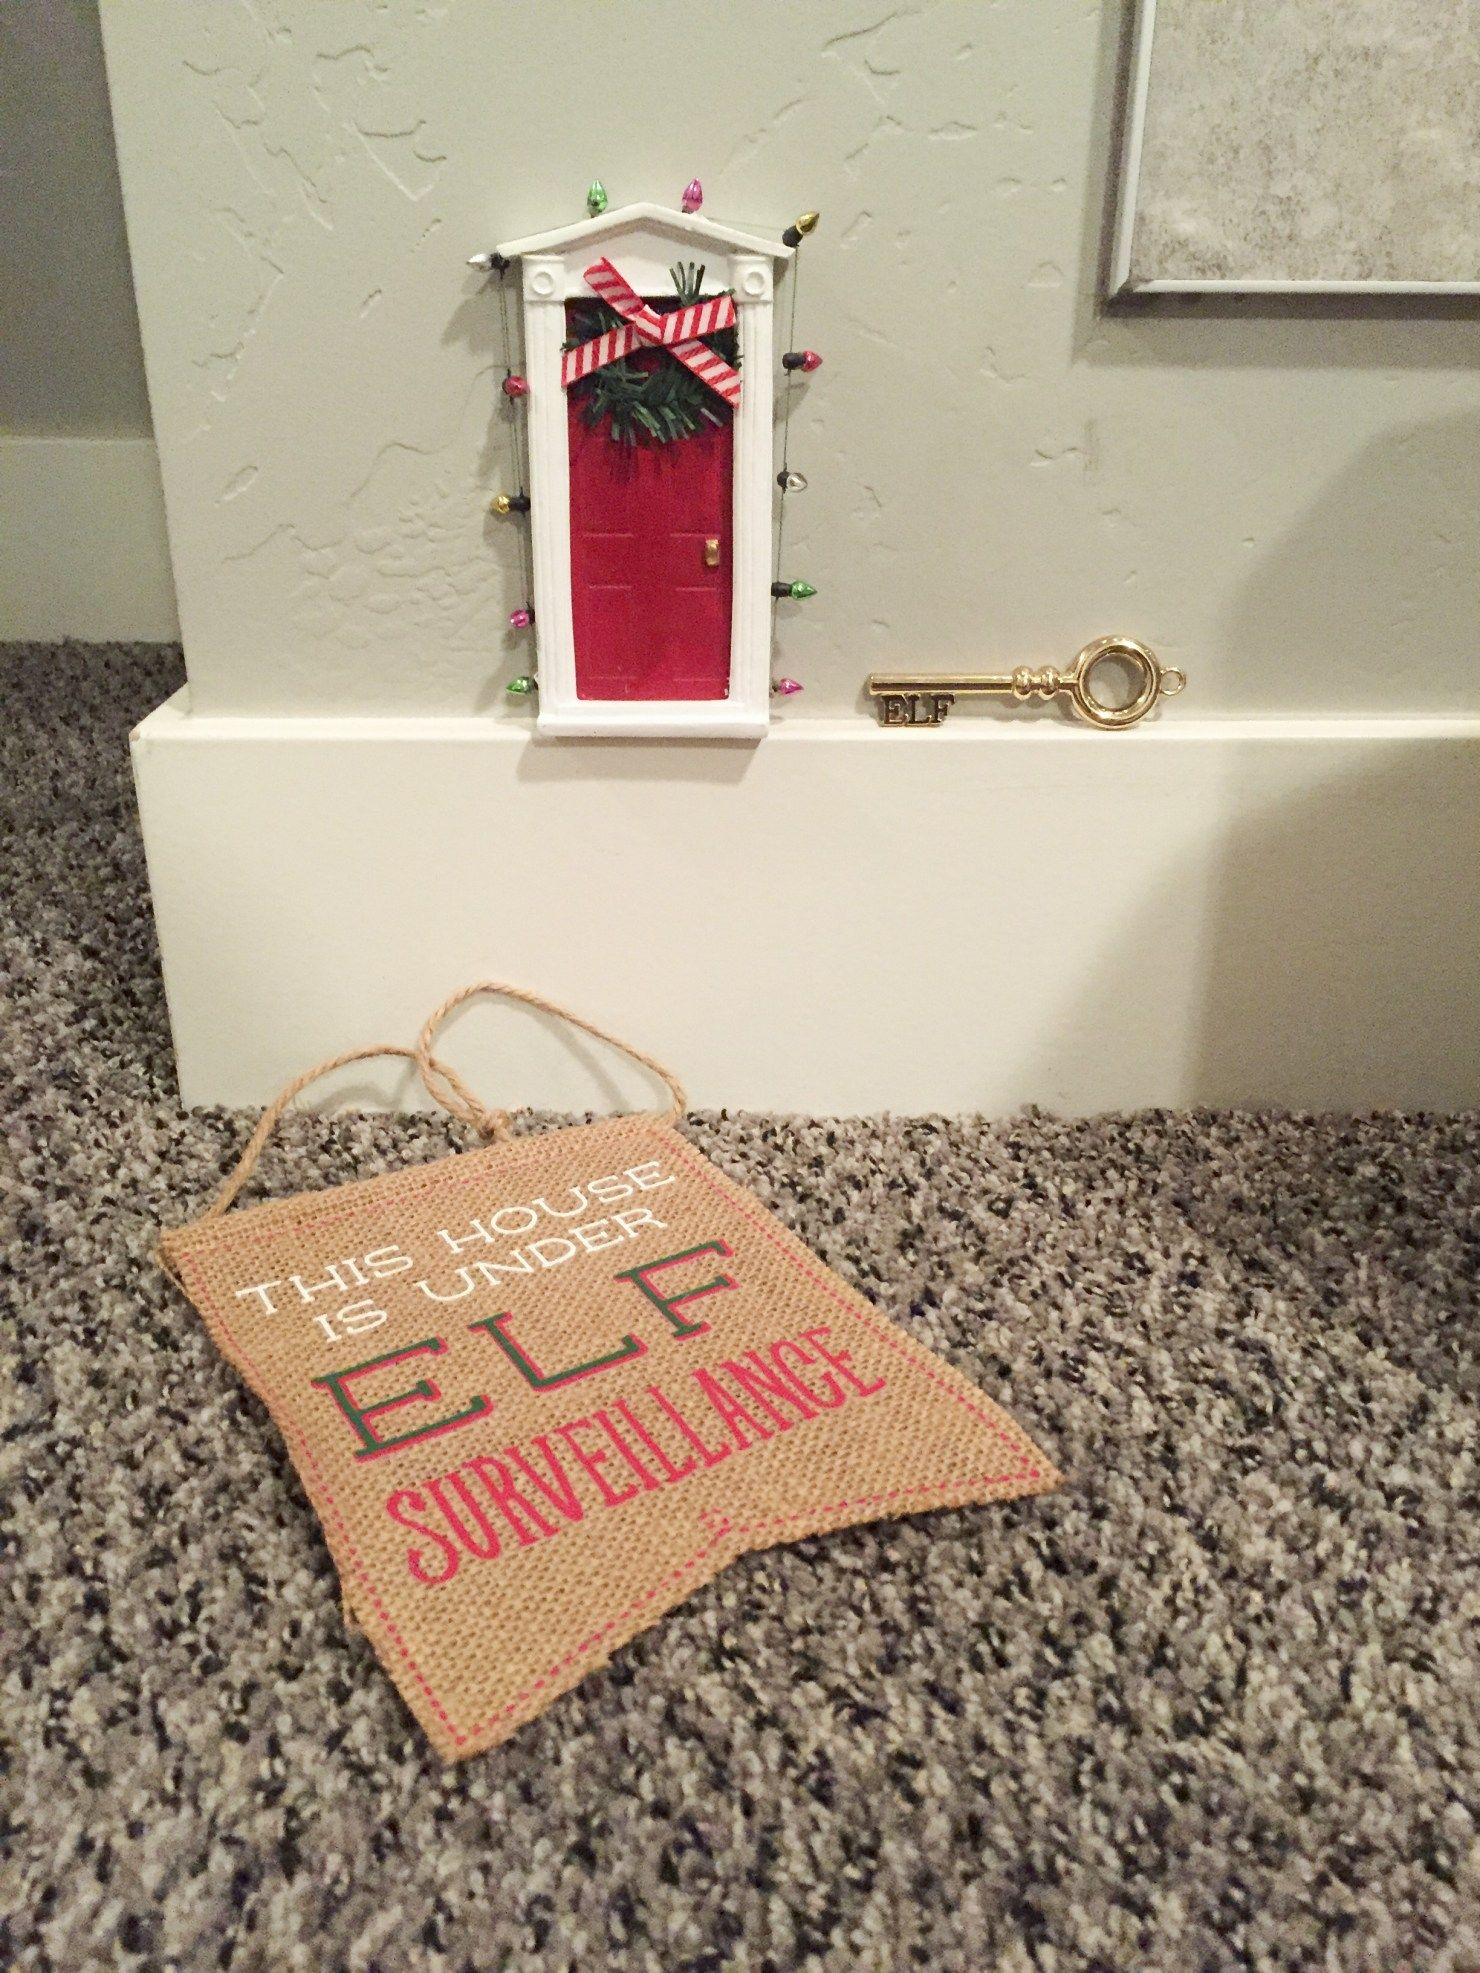 Elf on the Shelf - Arrival Letter Free Download • Ali Brugman Blog